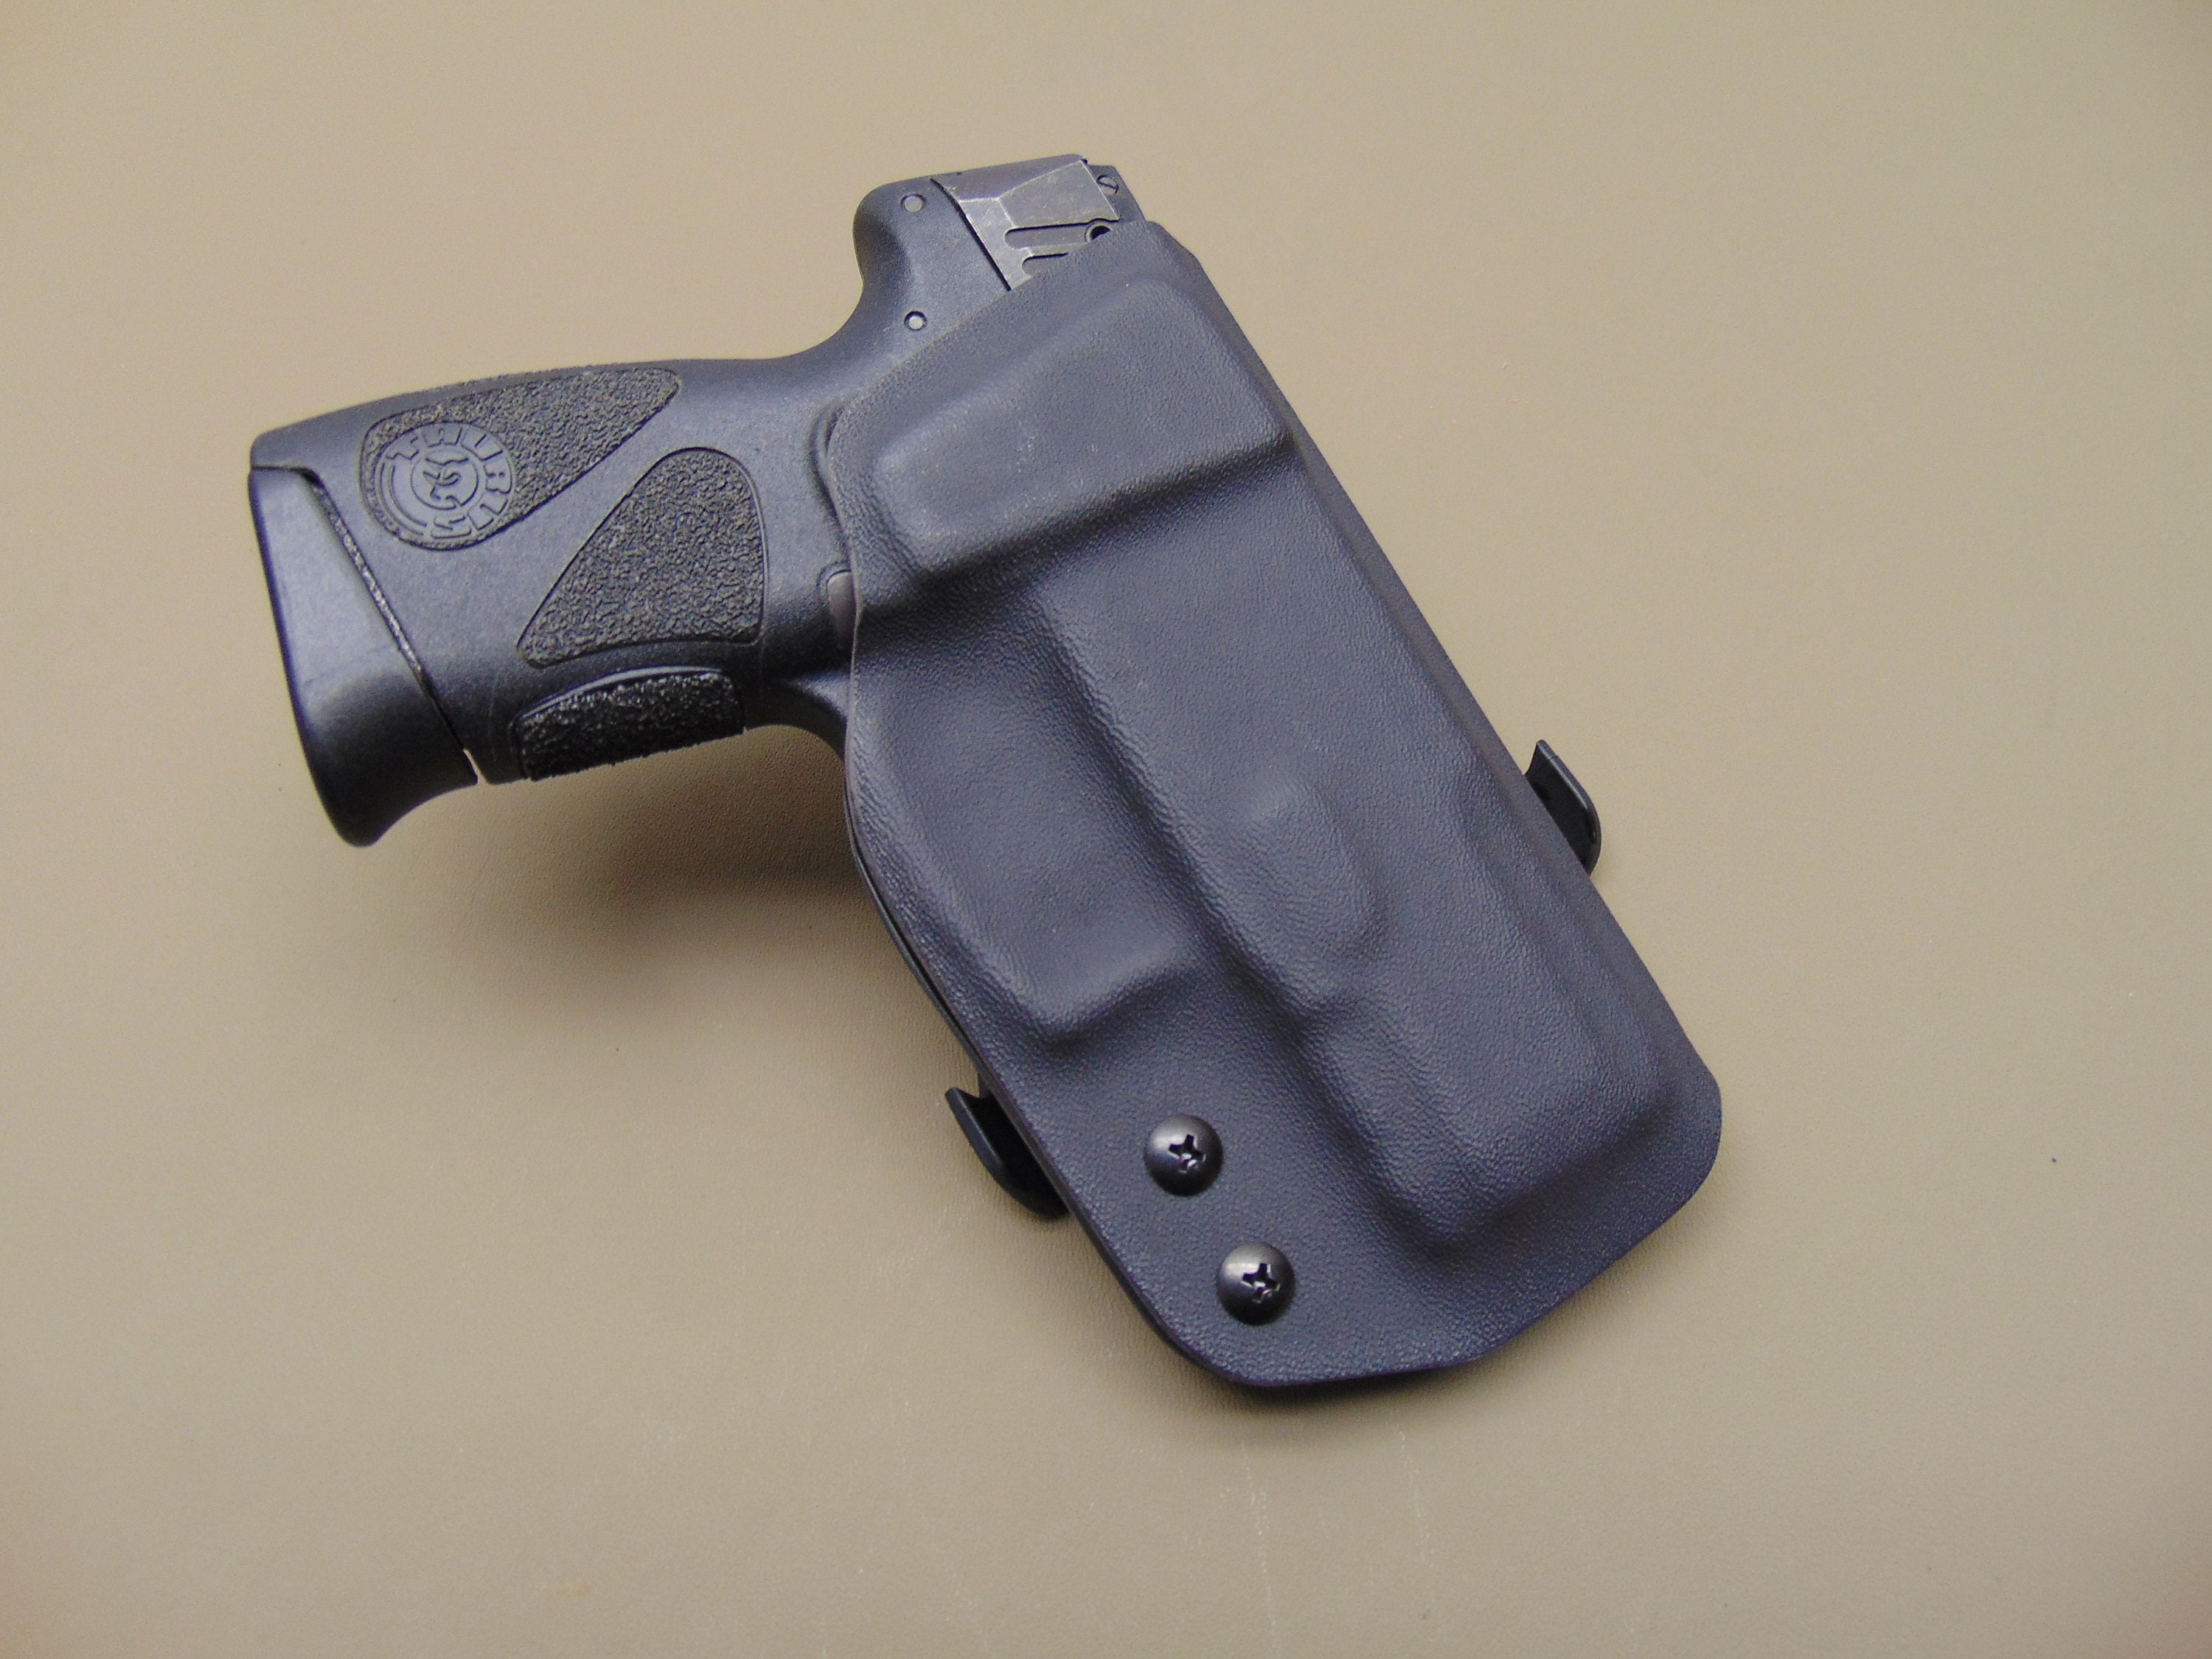 Taurus Millennium PT 111 G2 / G2C Outside the Waistband Paddle Holster /  See listing for Details!